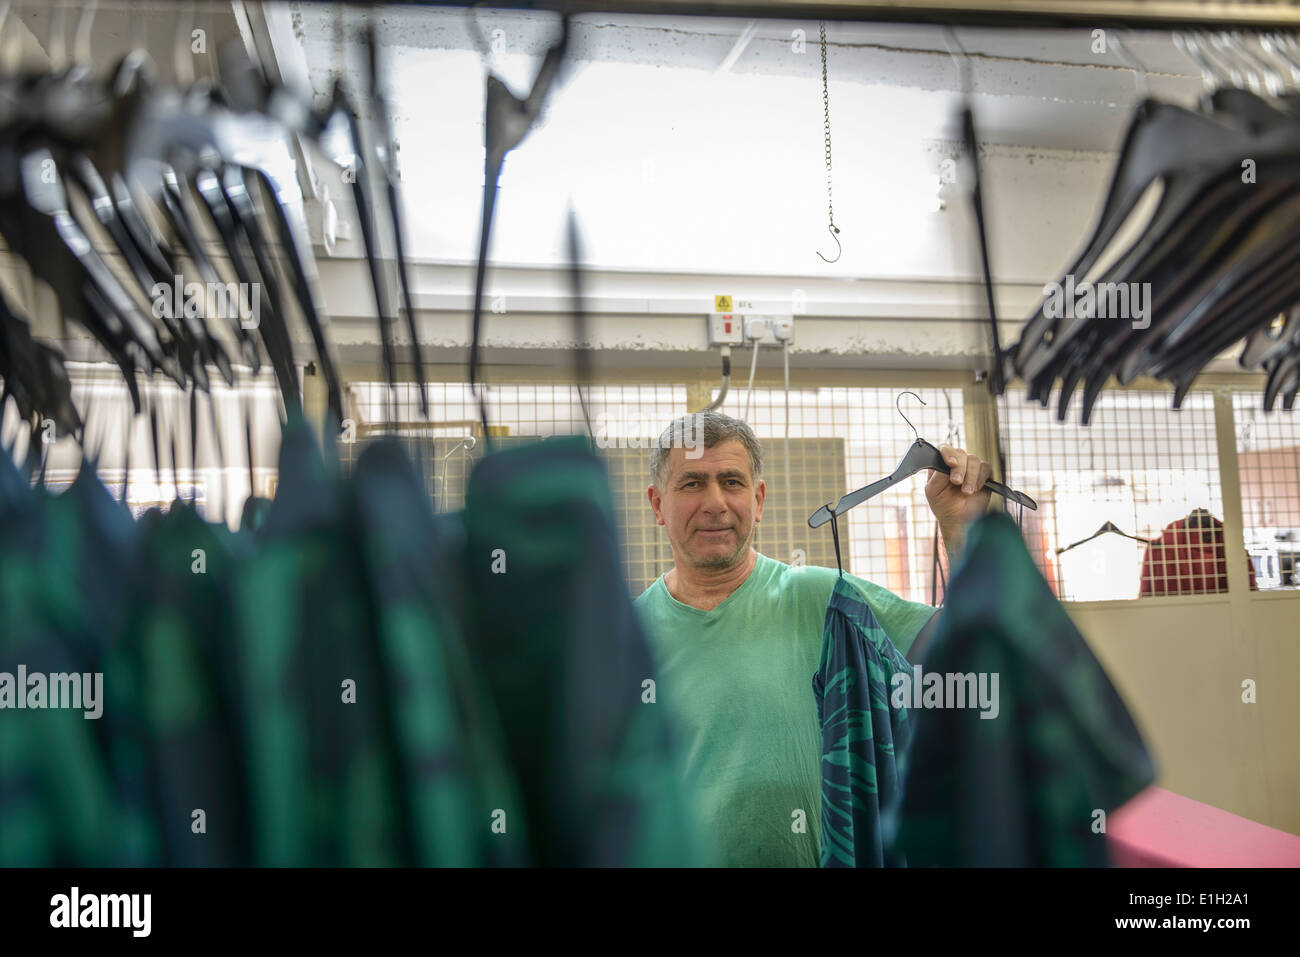 Worker hanging garments in clothing factory - Stock Image